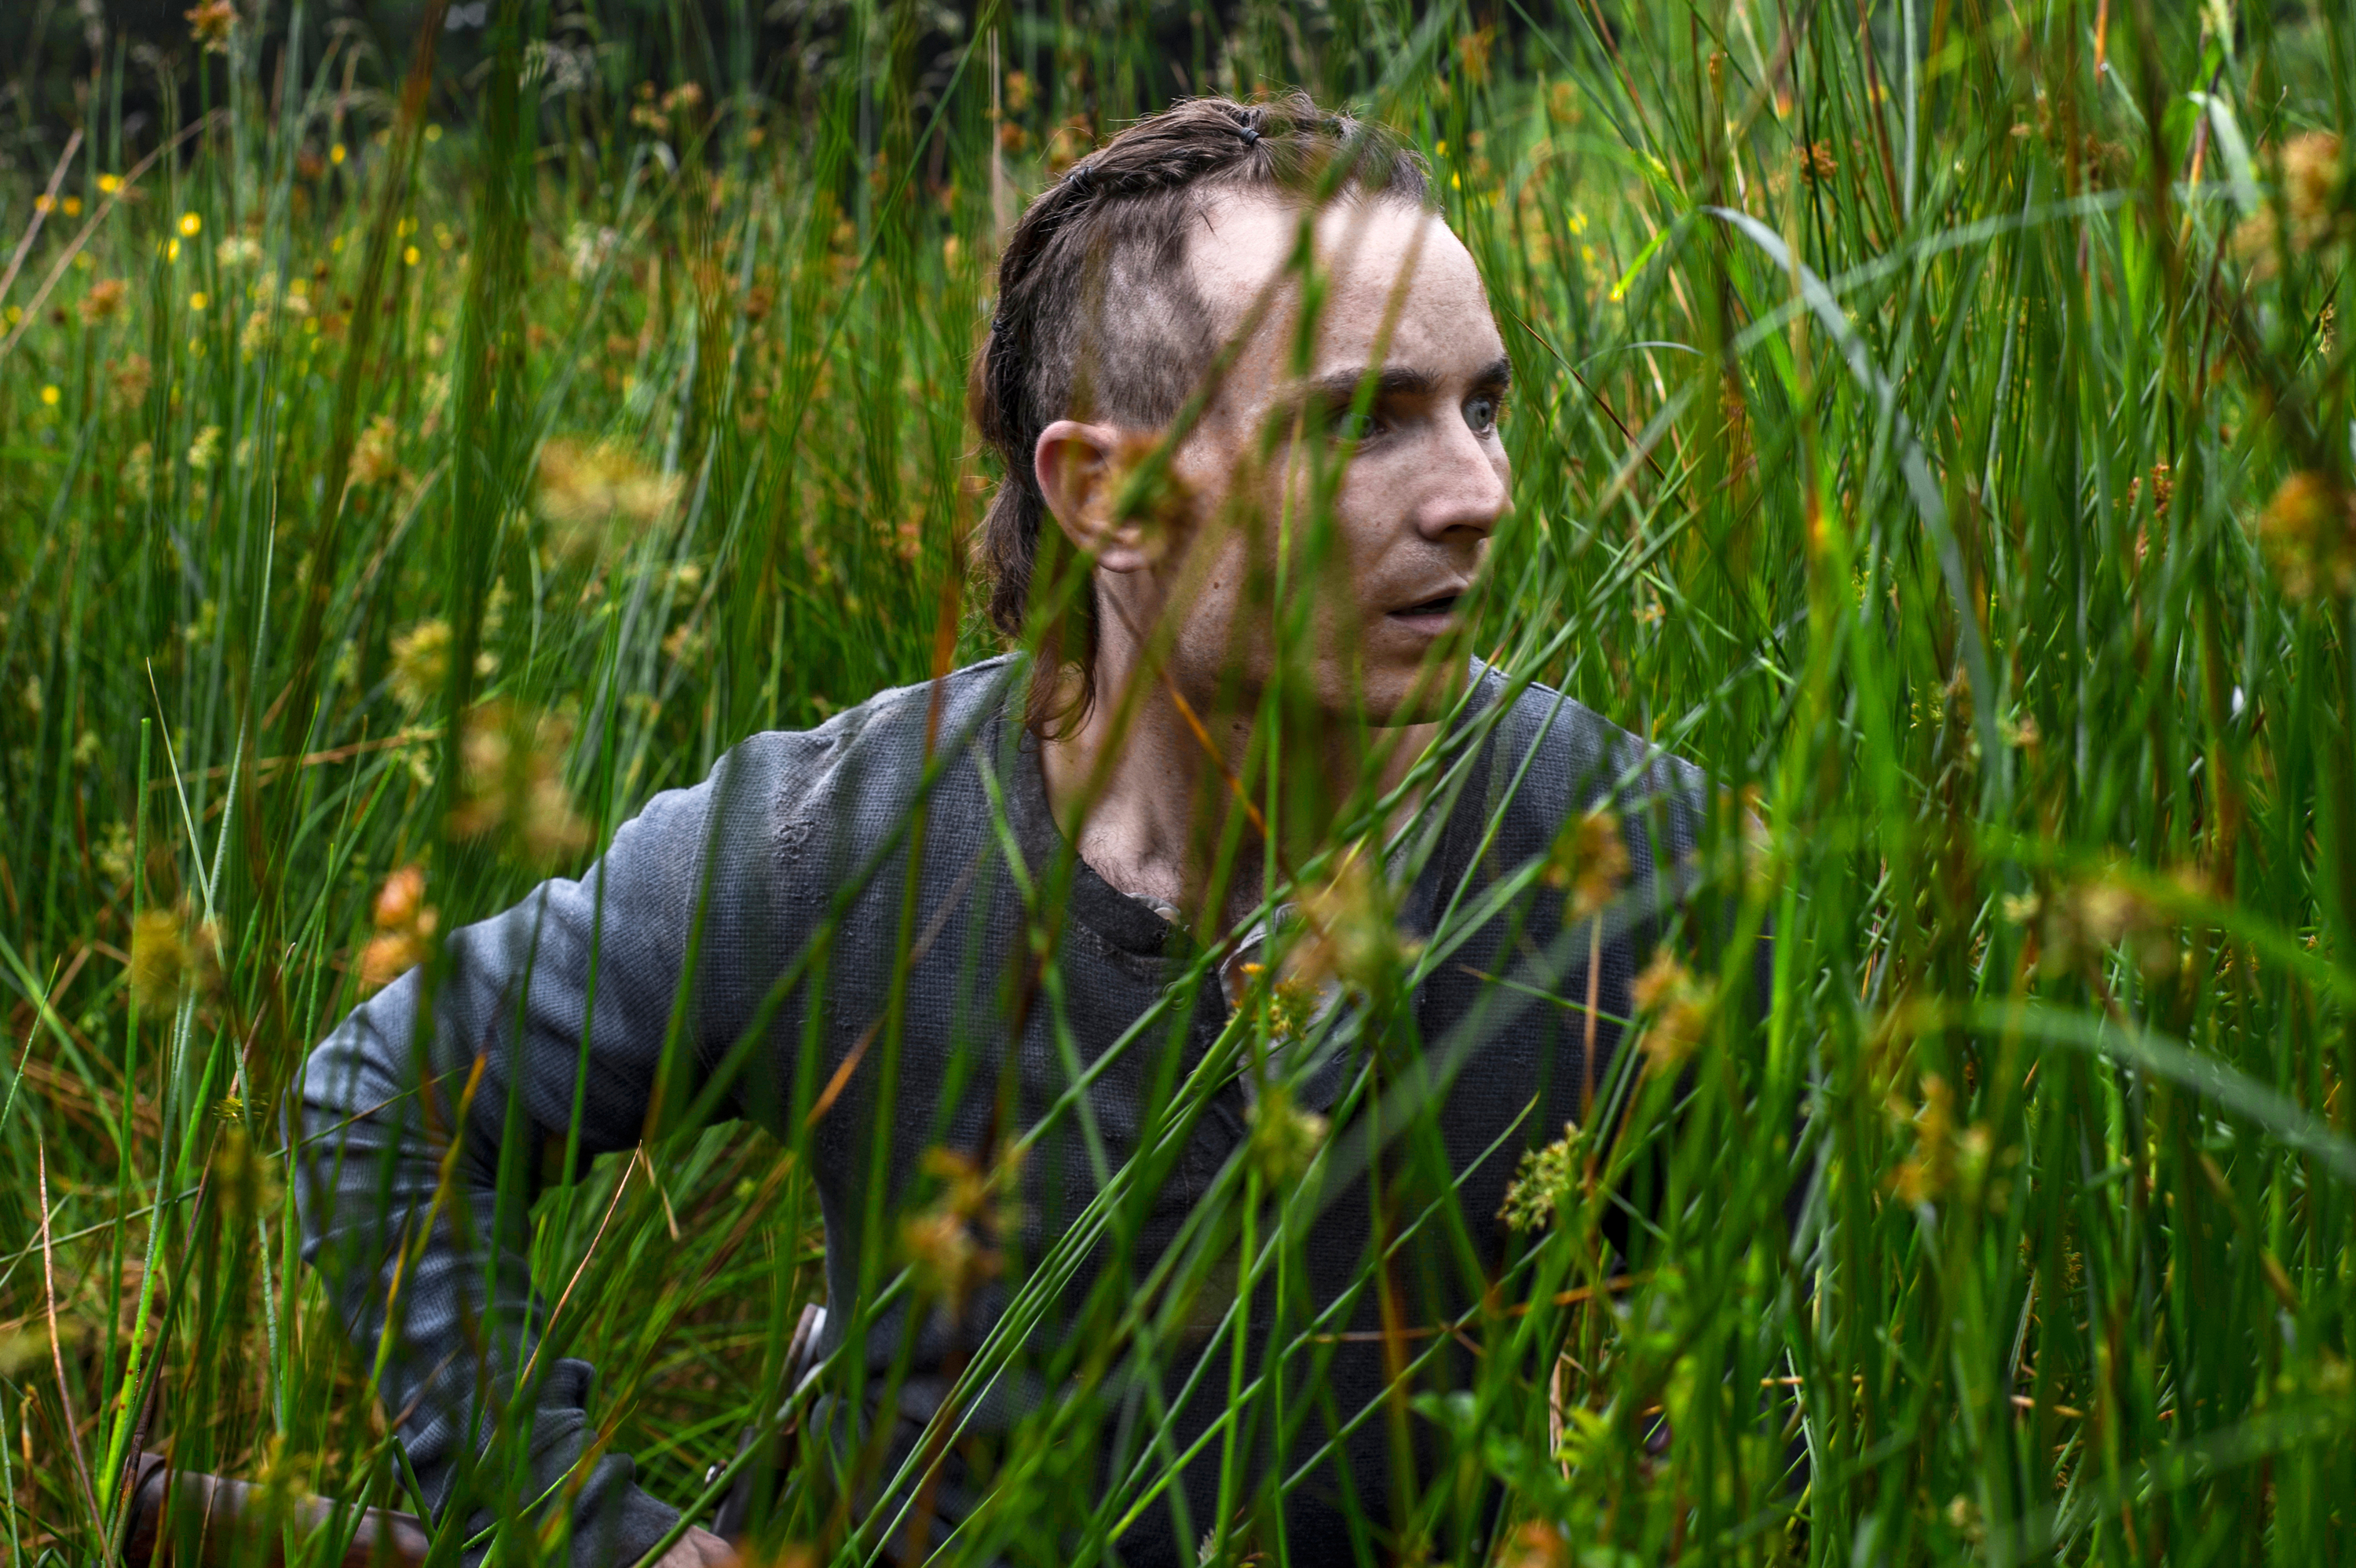 Review: The Survivalist